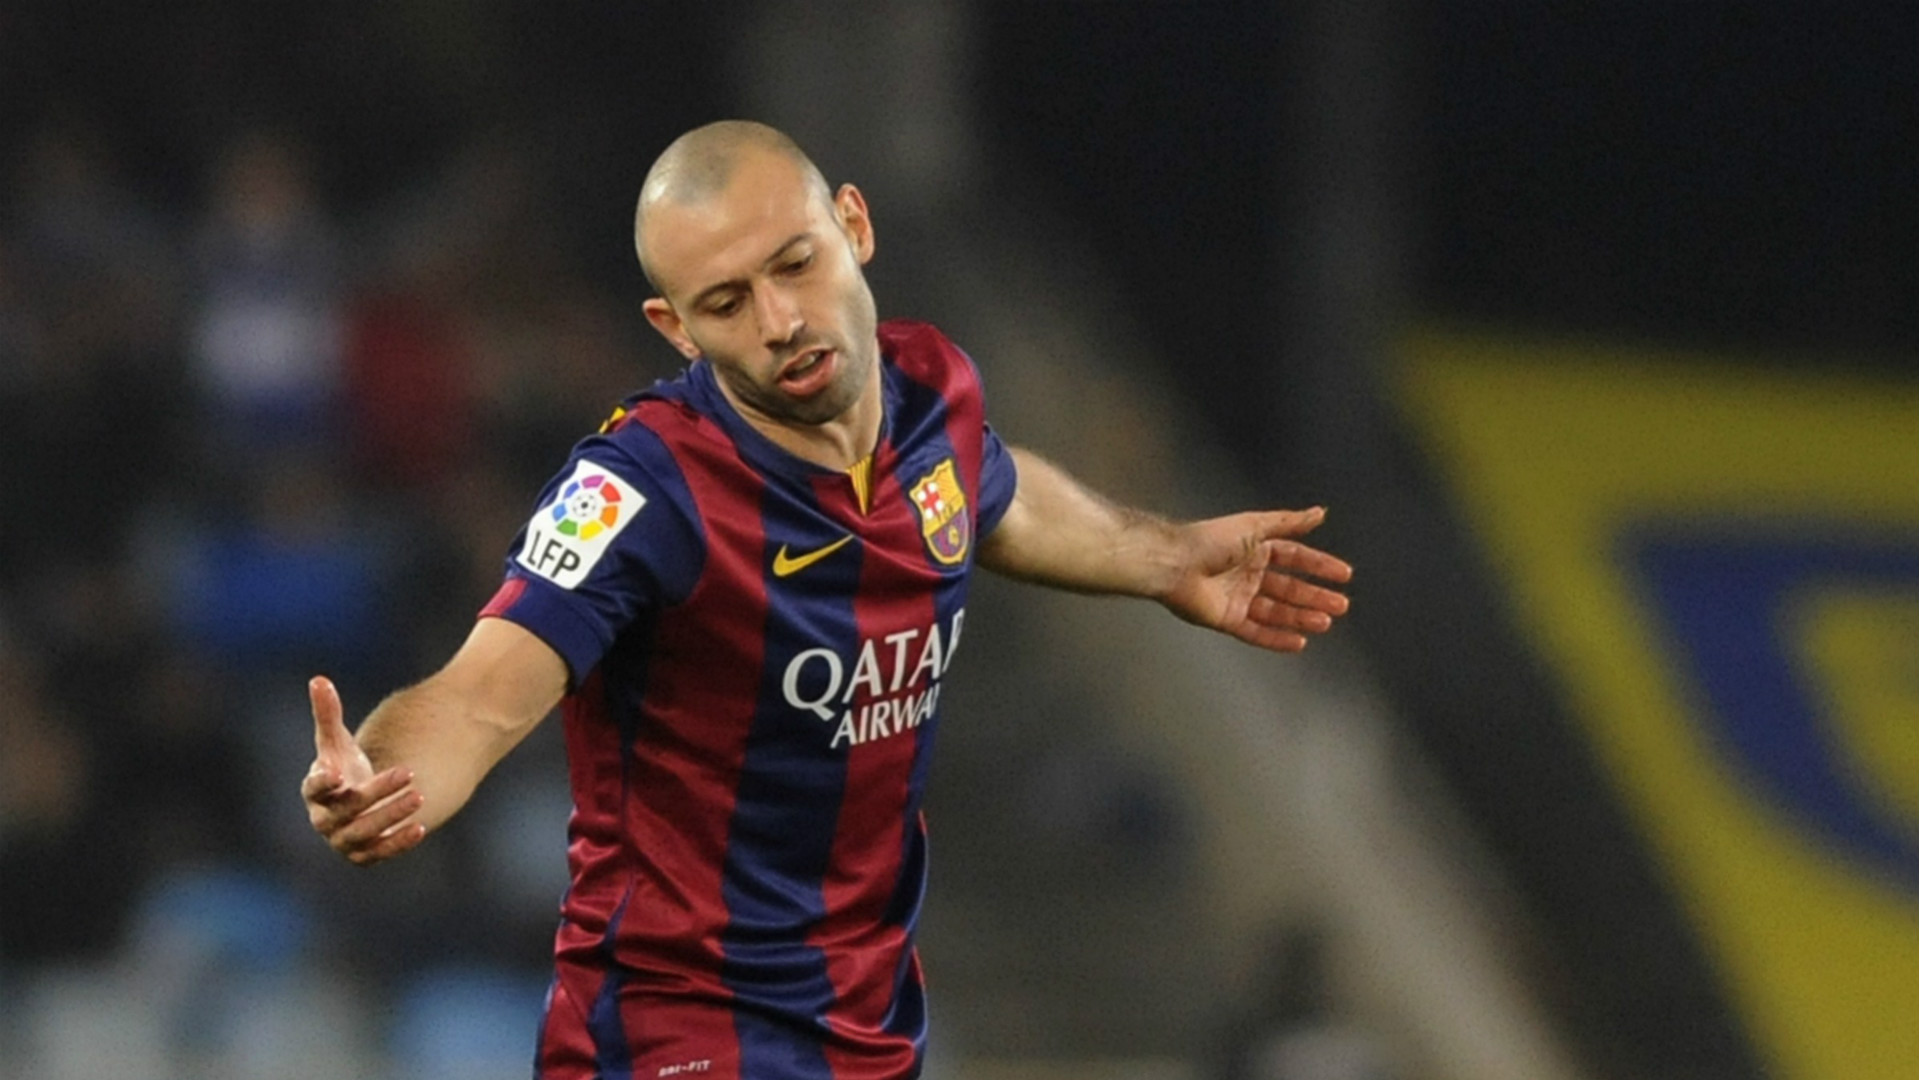 Javier Mascherano Gets Torn a New e For Evading Taxes